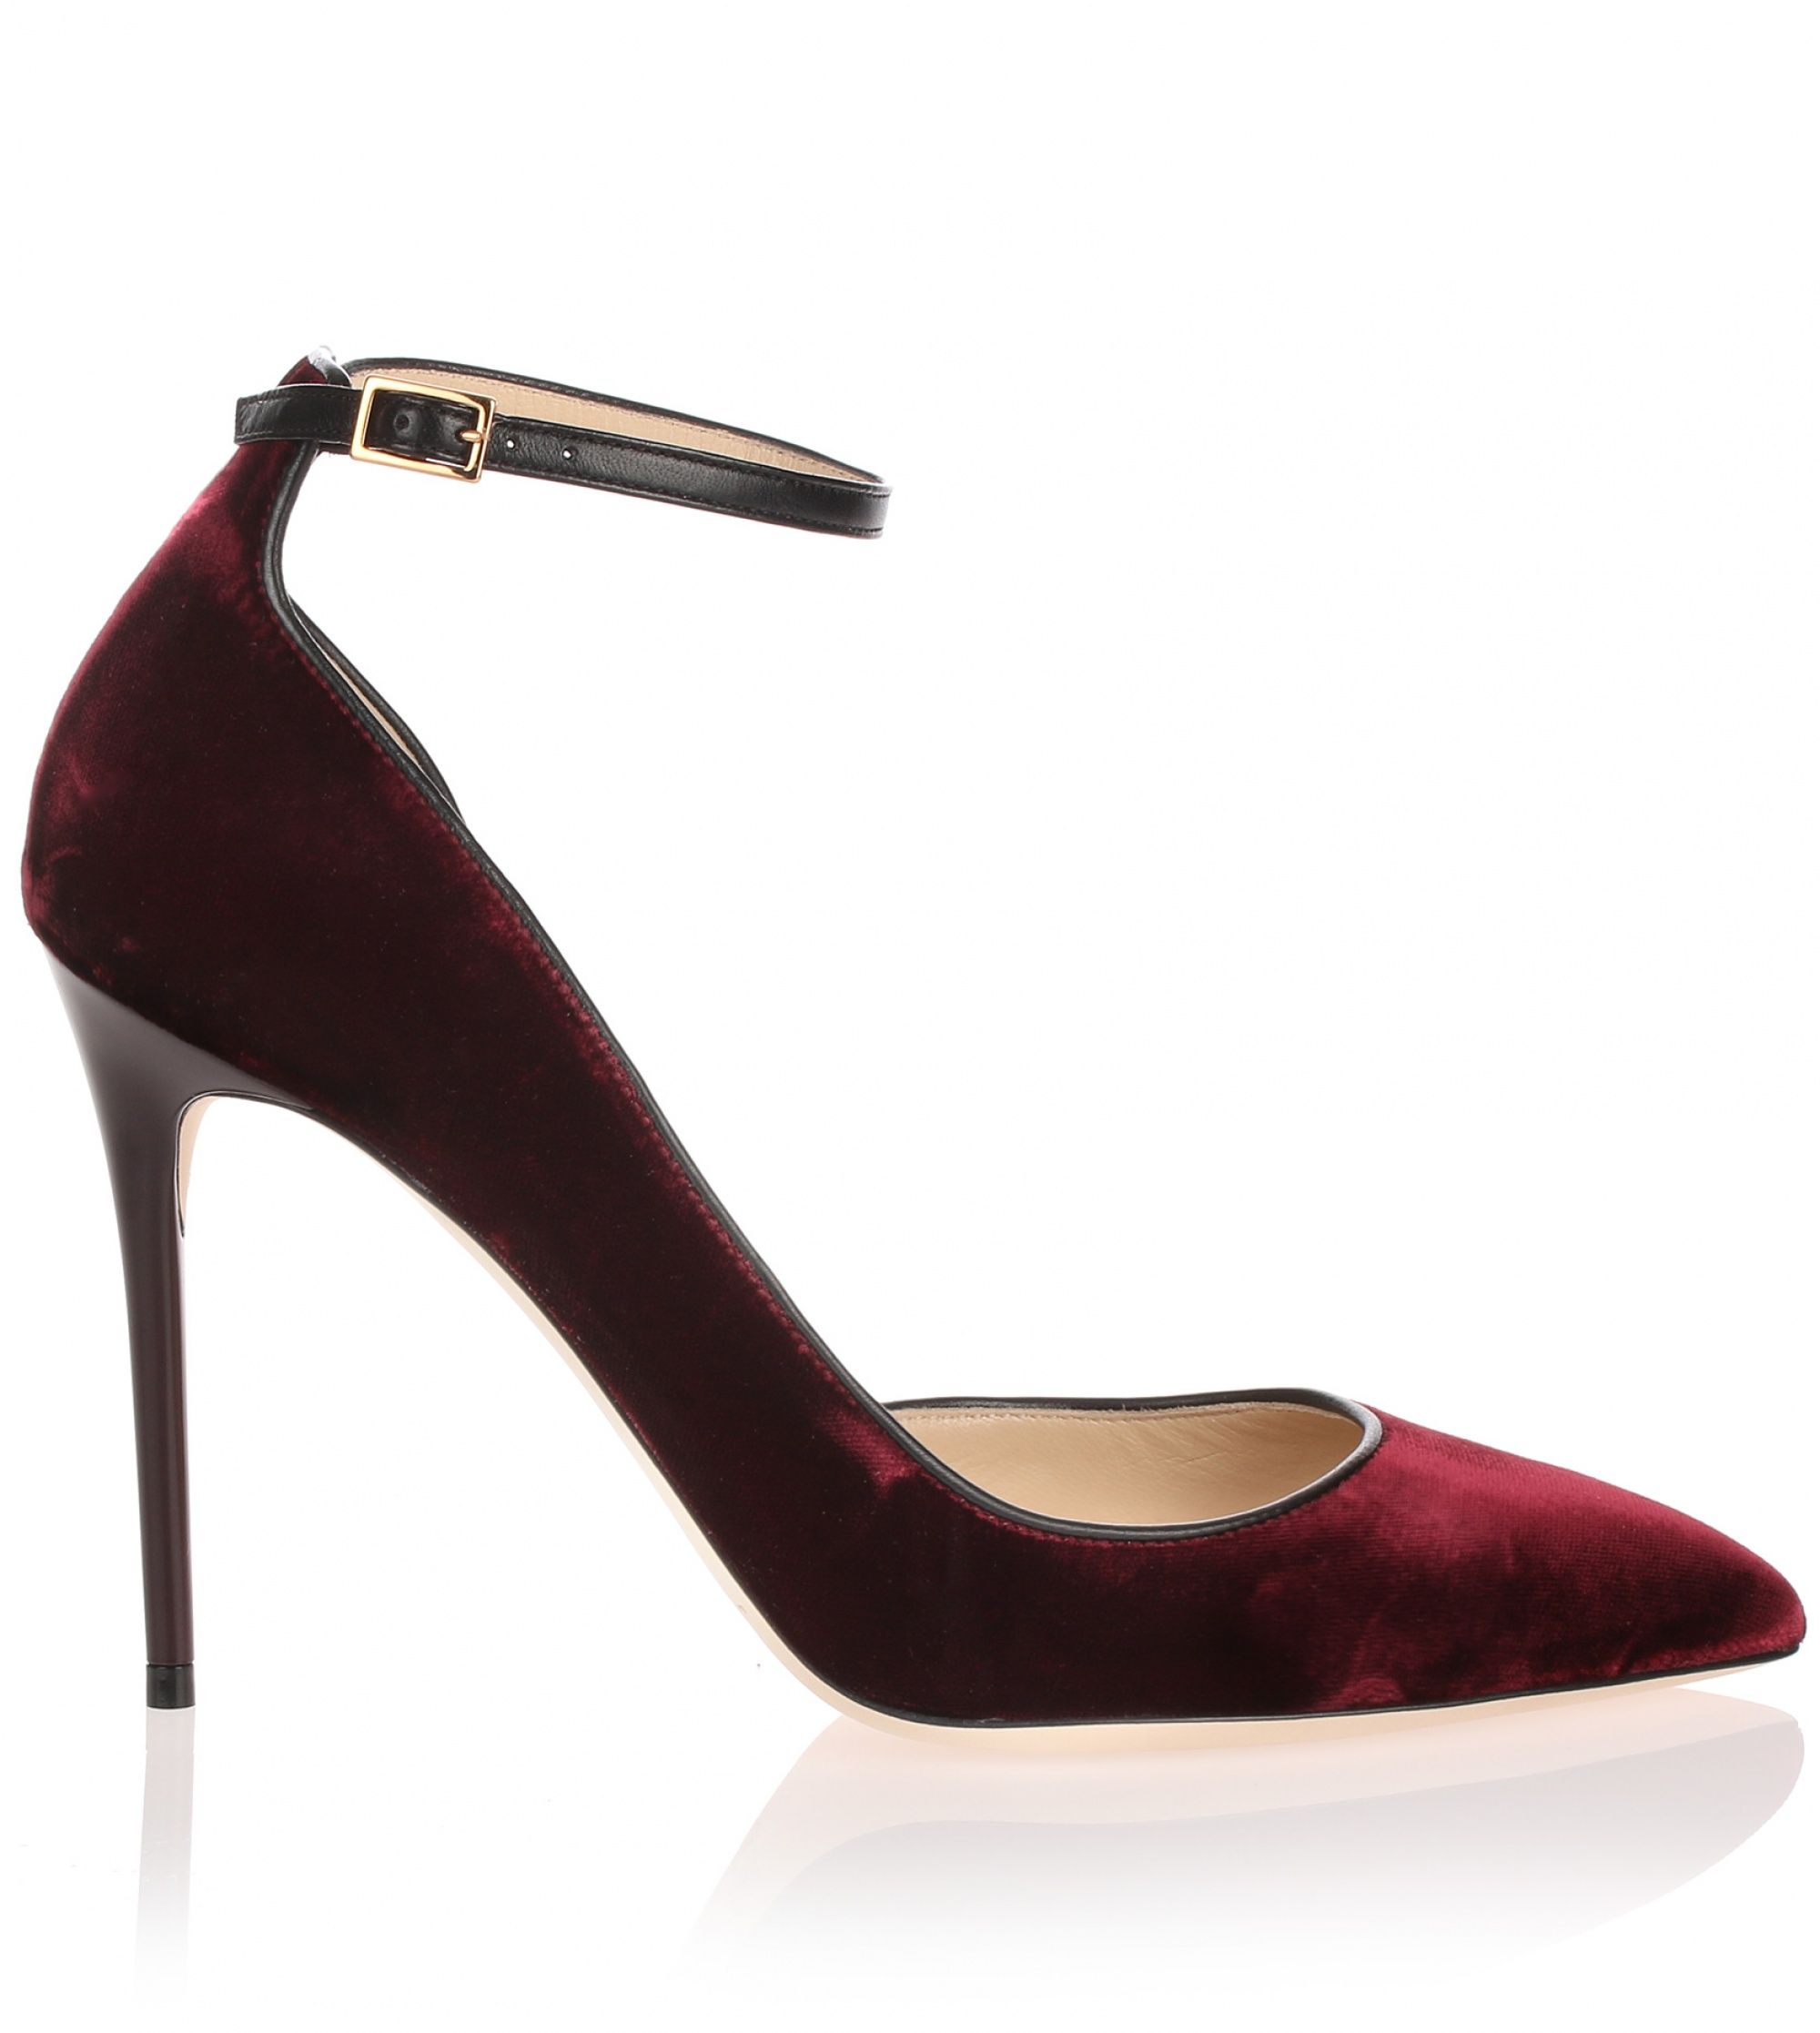 Burgundy velvet d'Orsay pump from Jimmy Choo. The Lucy has a 100mm stiletto heel, an adjustable ankle strap, and a pointed toe.True to sizeLeather soleMade in ItalyDesigner colour: Bordeaux